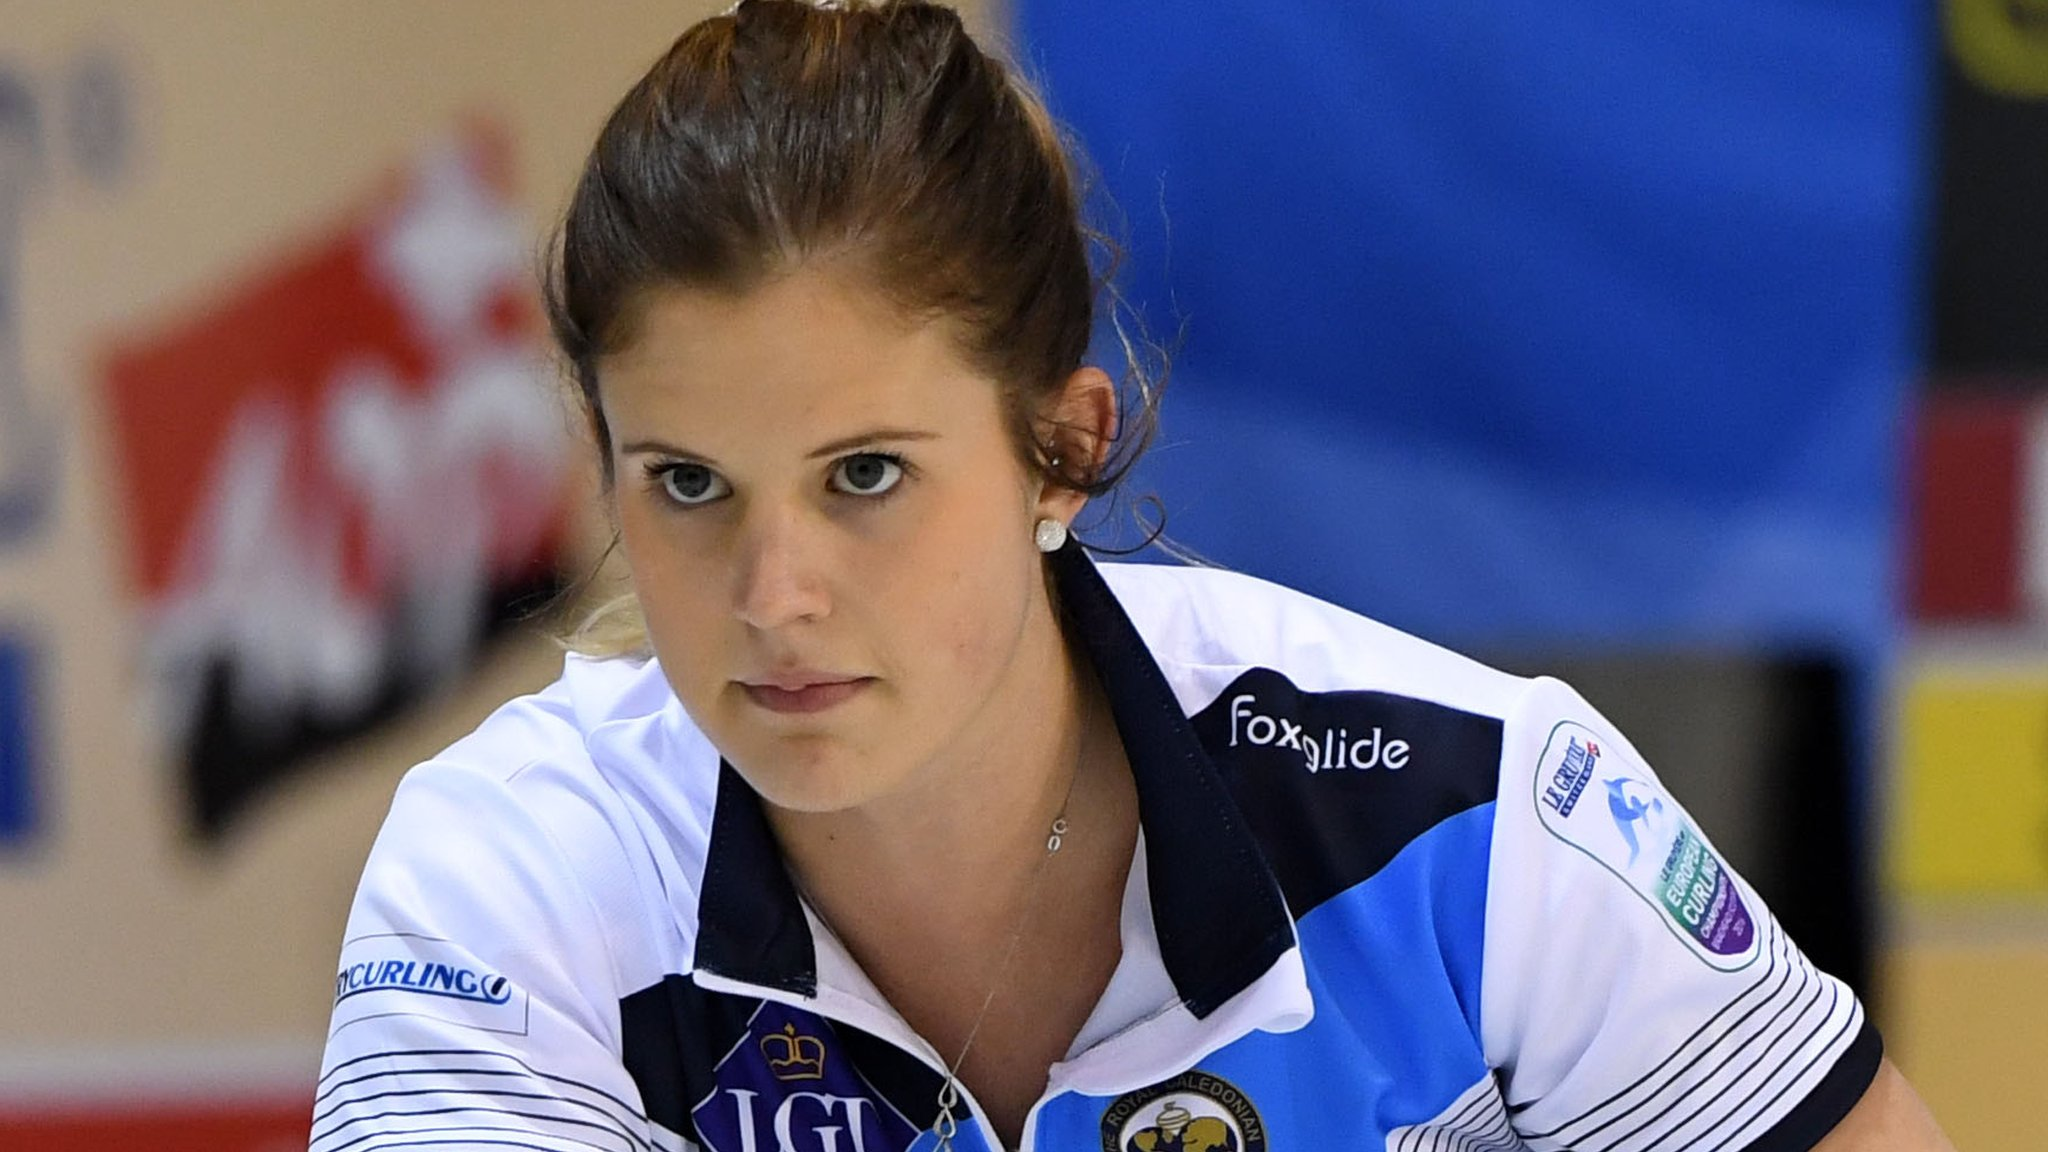 Curling: Vicki Chalmers retires from Scotland duty